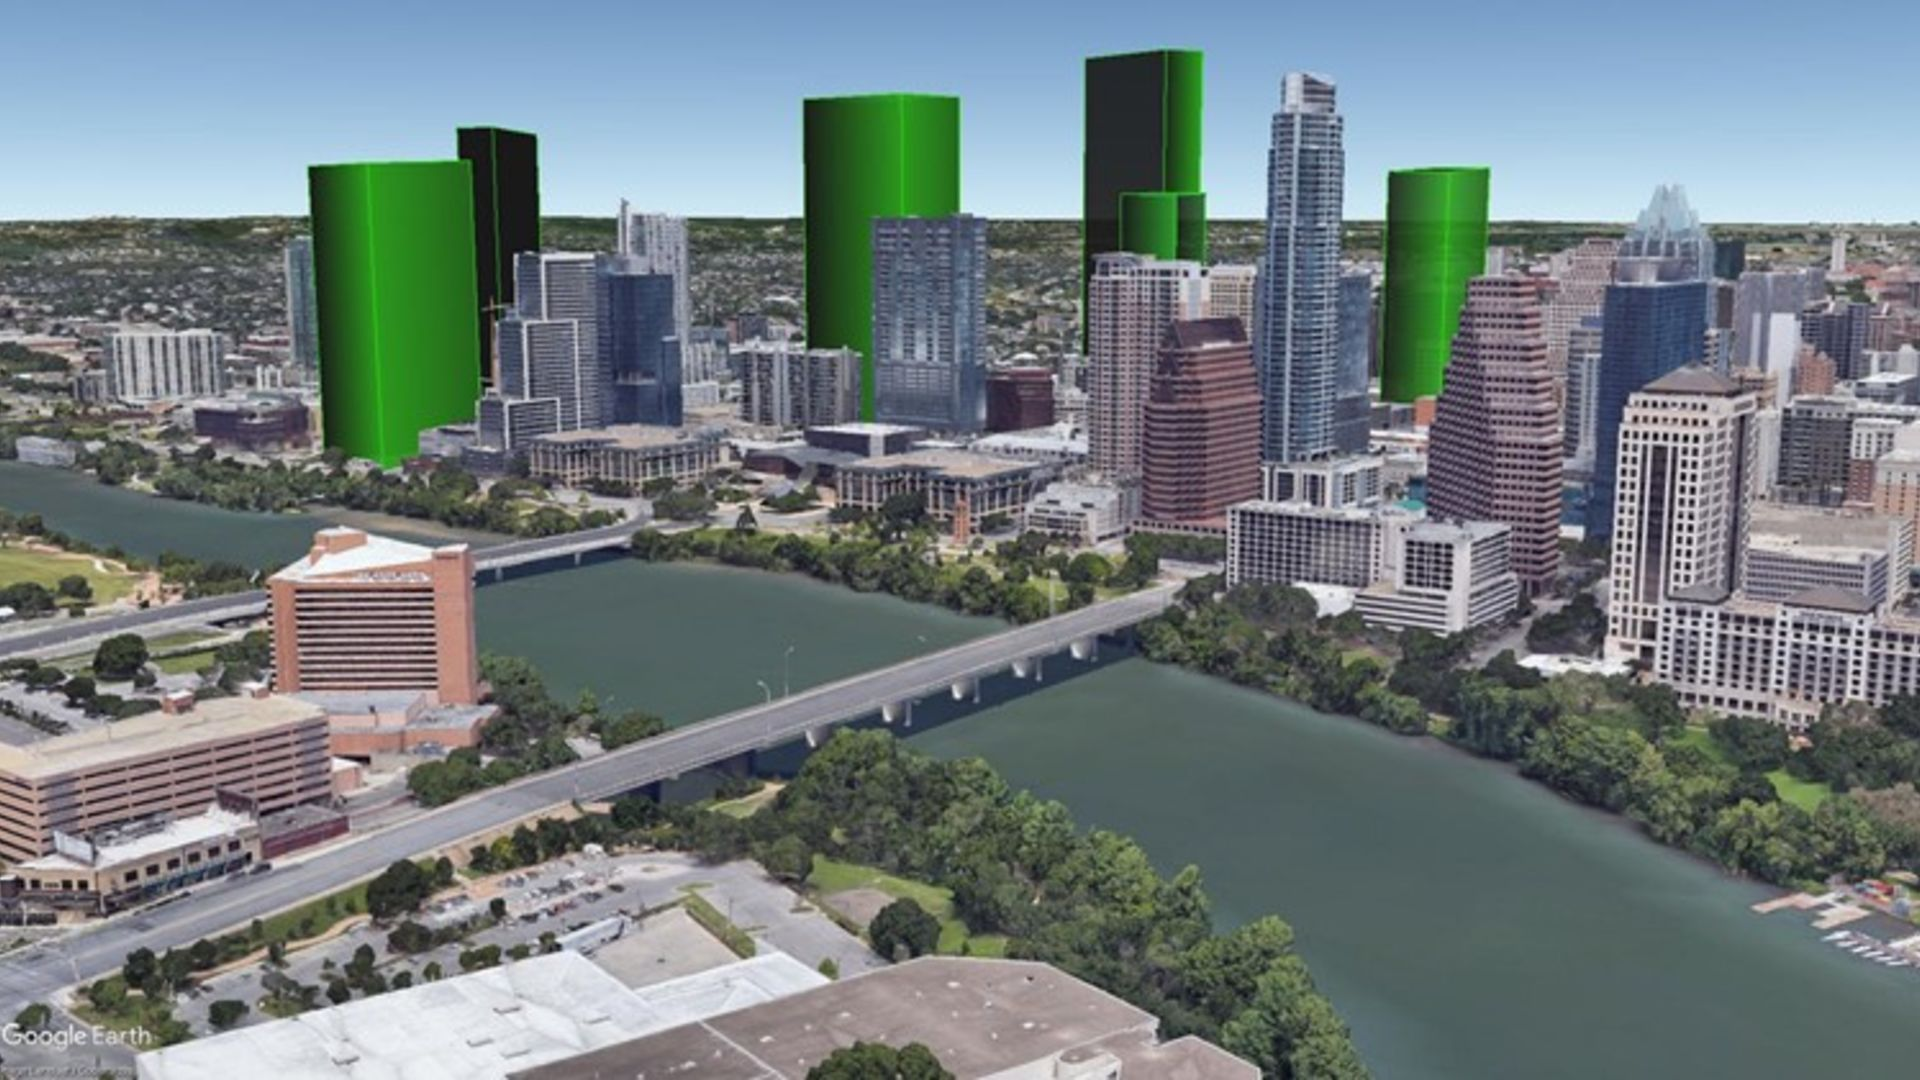 Five new buildings will soon go up in Downtown Austin